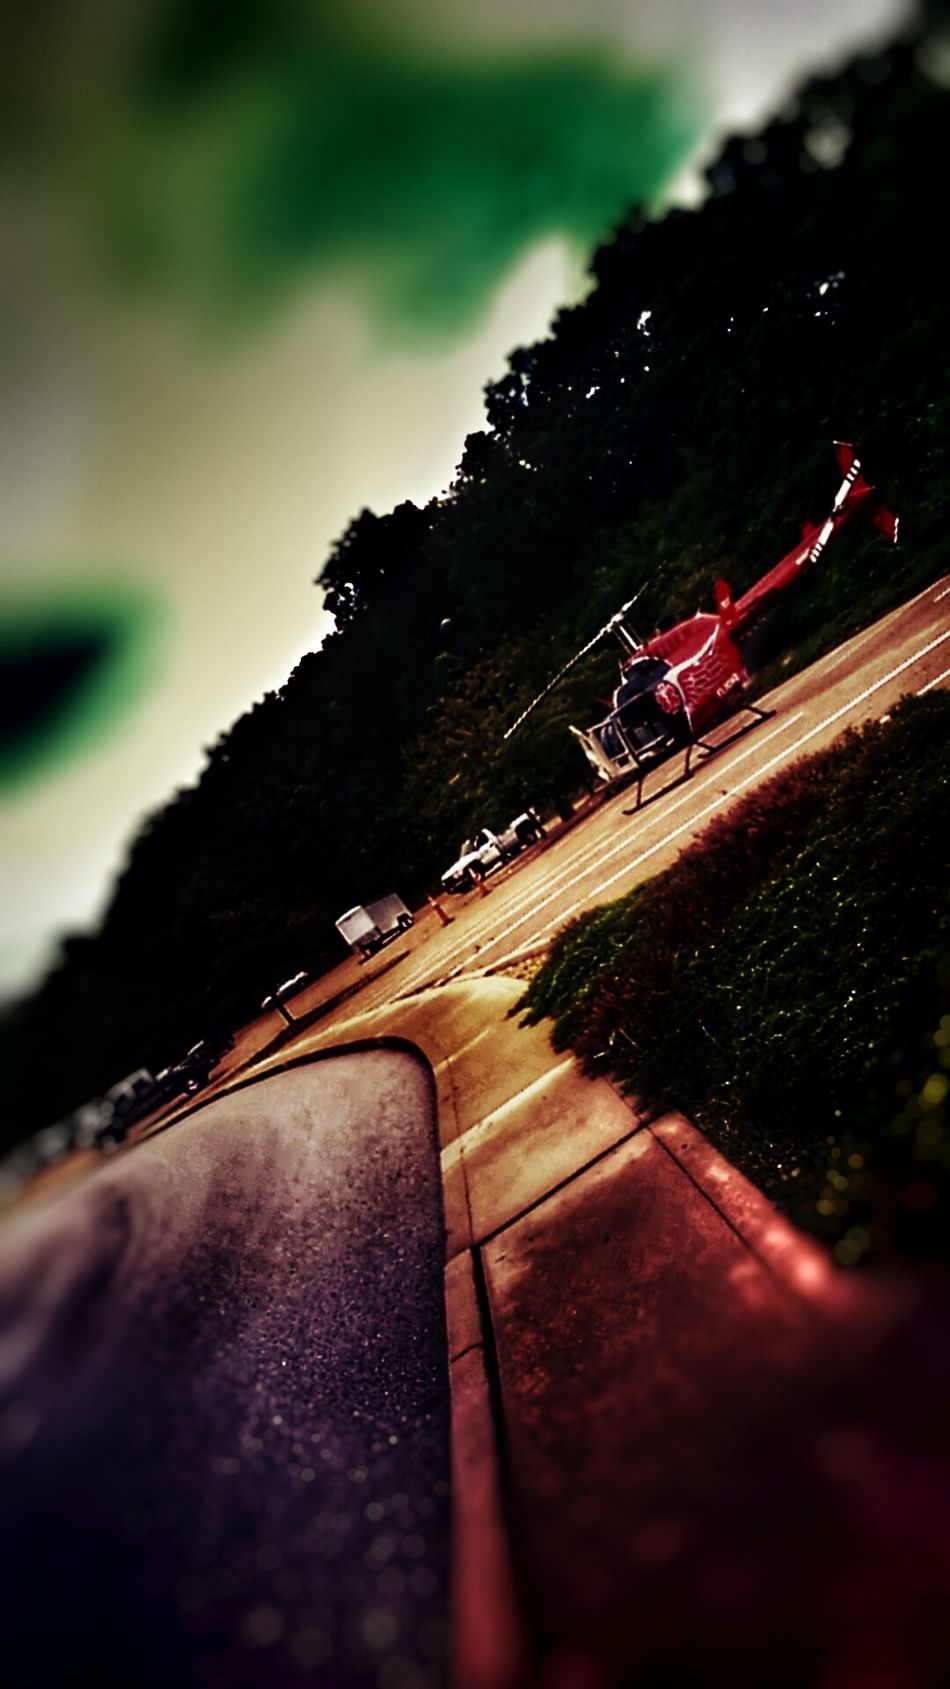 The Impurist Emergency Landing Service Vehicle Hell Copter Blurred Visions Darkness And Light Didnt Make It Mother Vs Nature Tilt-a-world